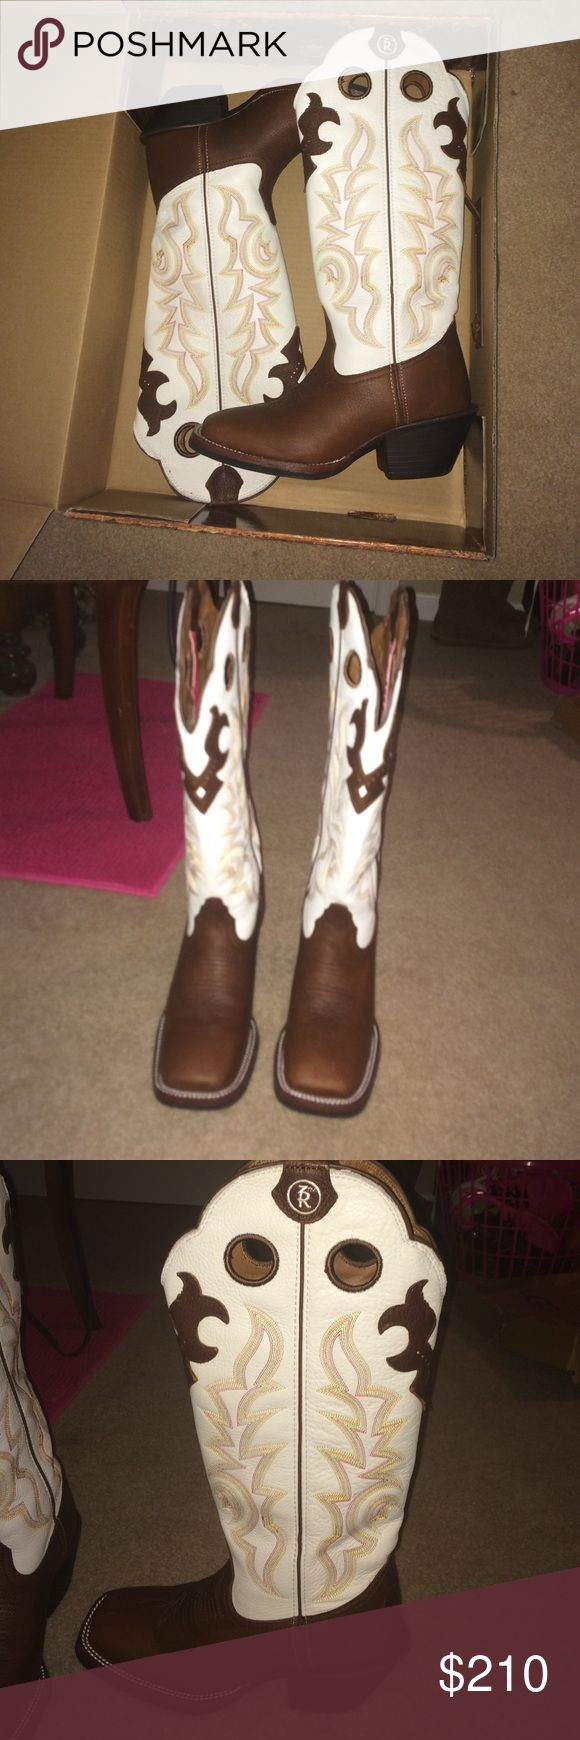 Tony Lama boots BRAND NEW, STILL IN THE BOX, Tony Lama boots. I love these, I just never wear them. Worn once. Size 8. Square toe. OPEN TO ALL OFFERS 😃 Tony Lama Shoes